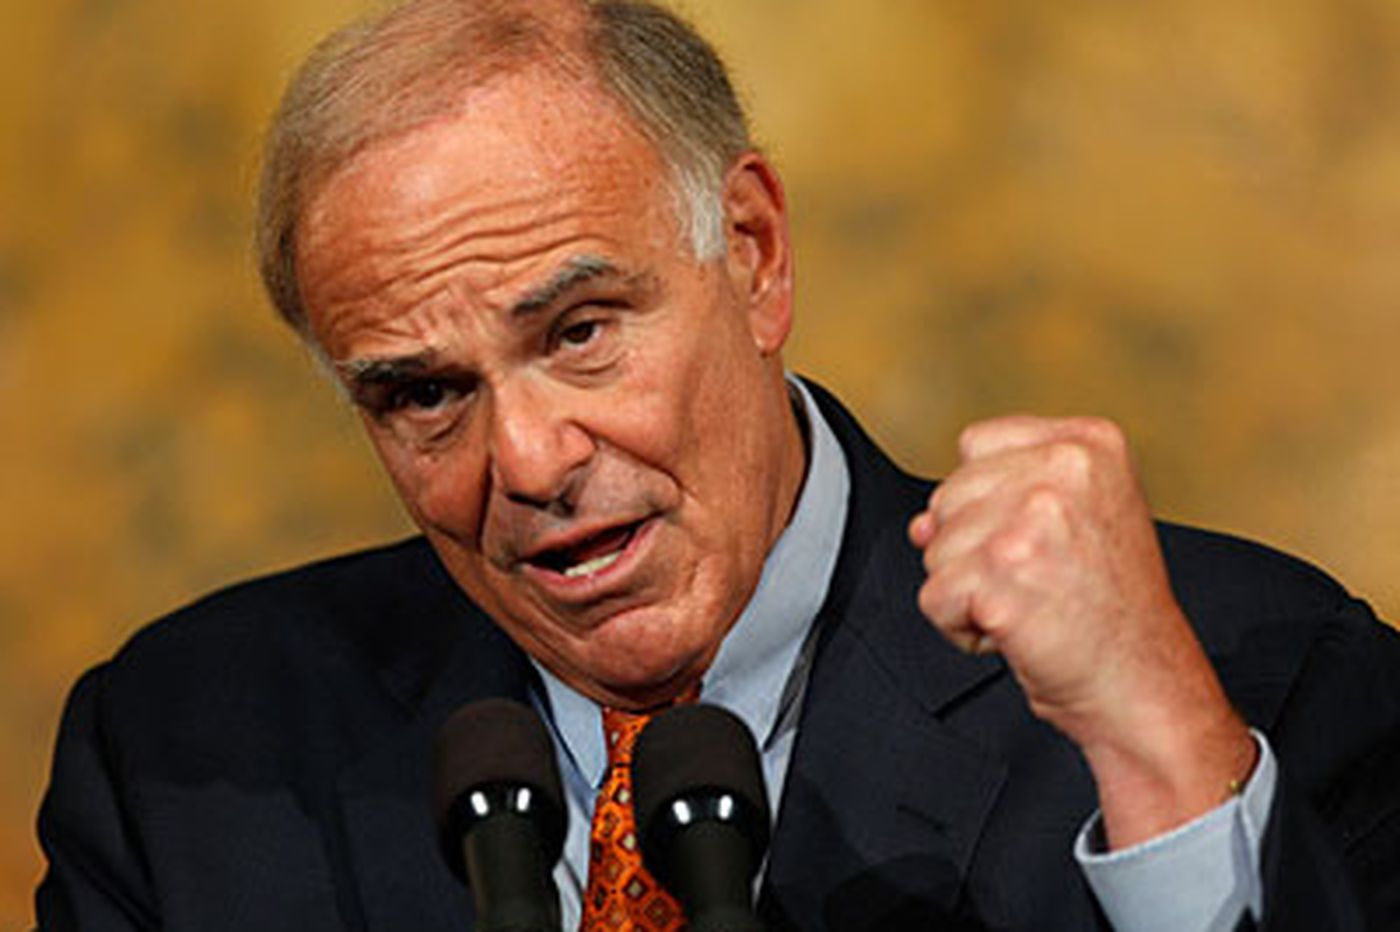 Anti-government extremists target Rendell, other govs